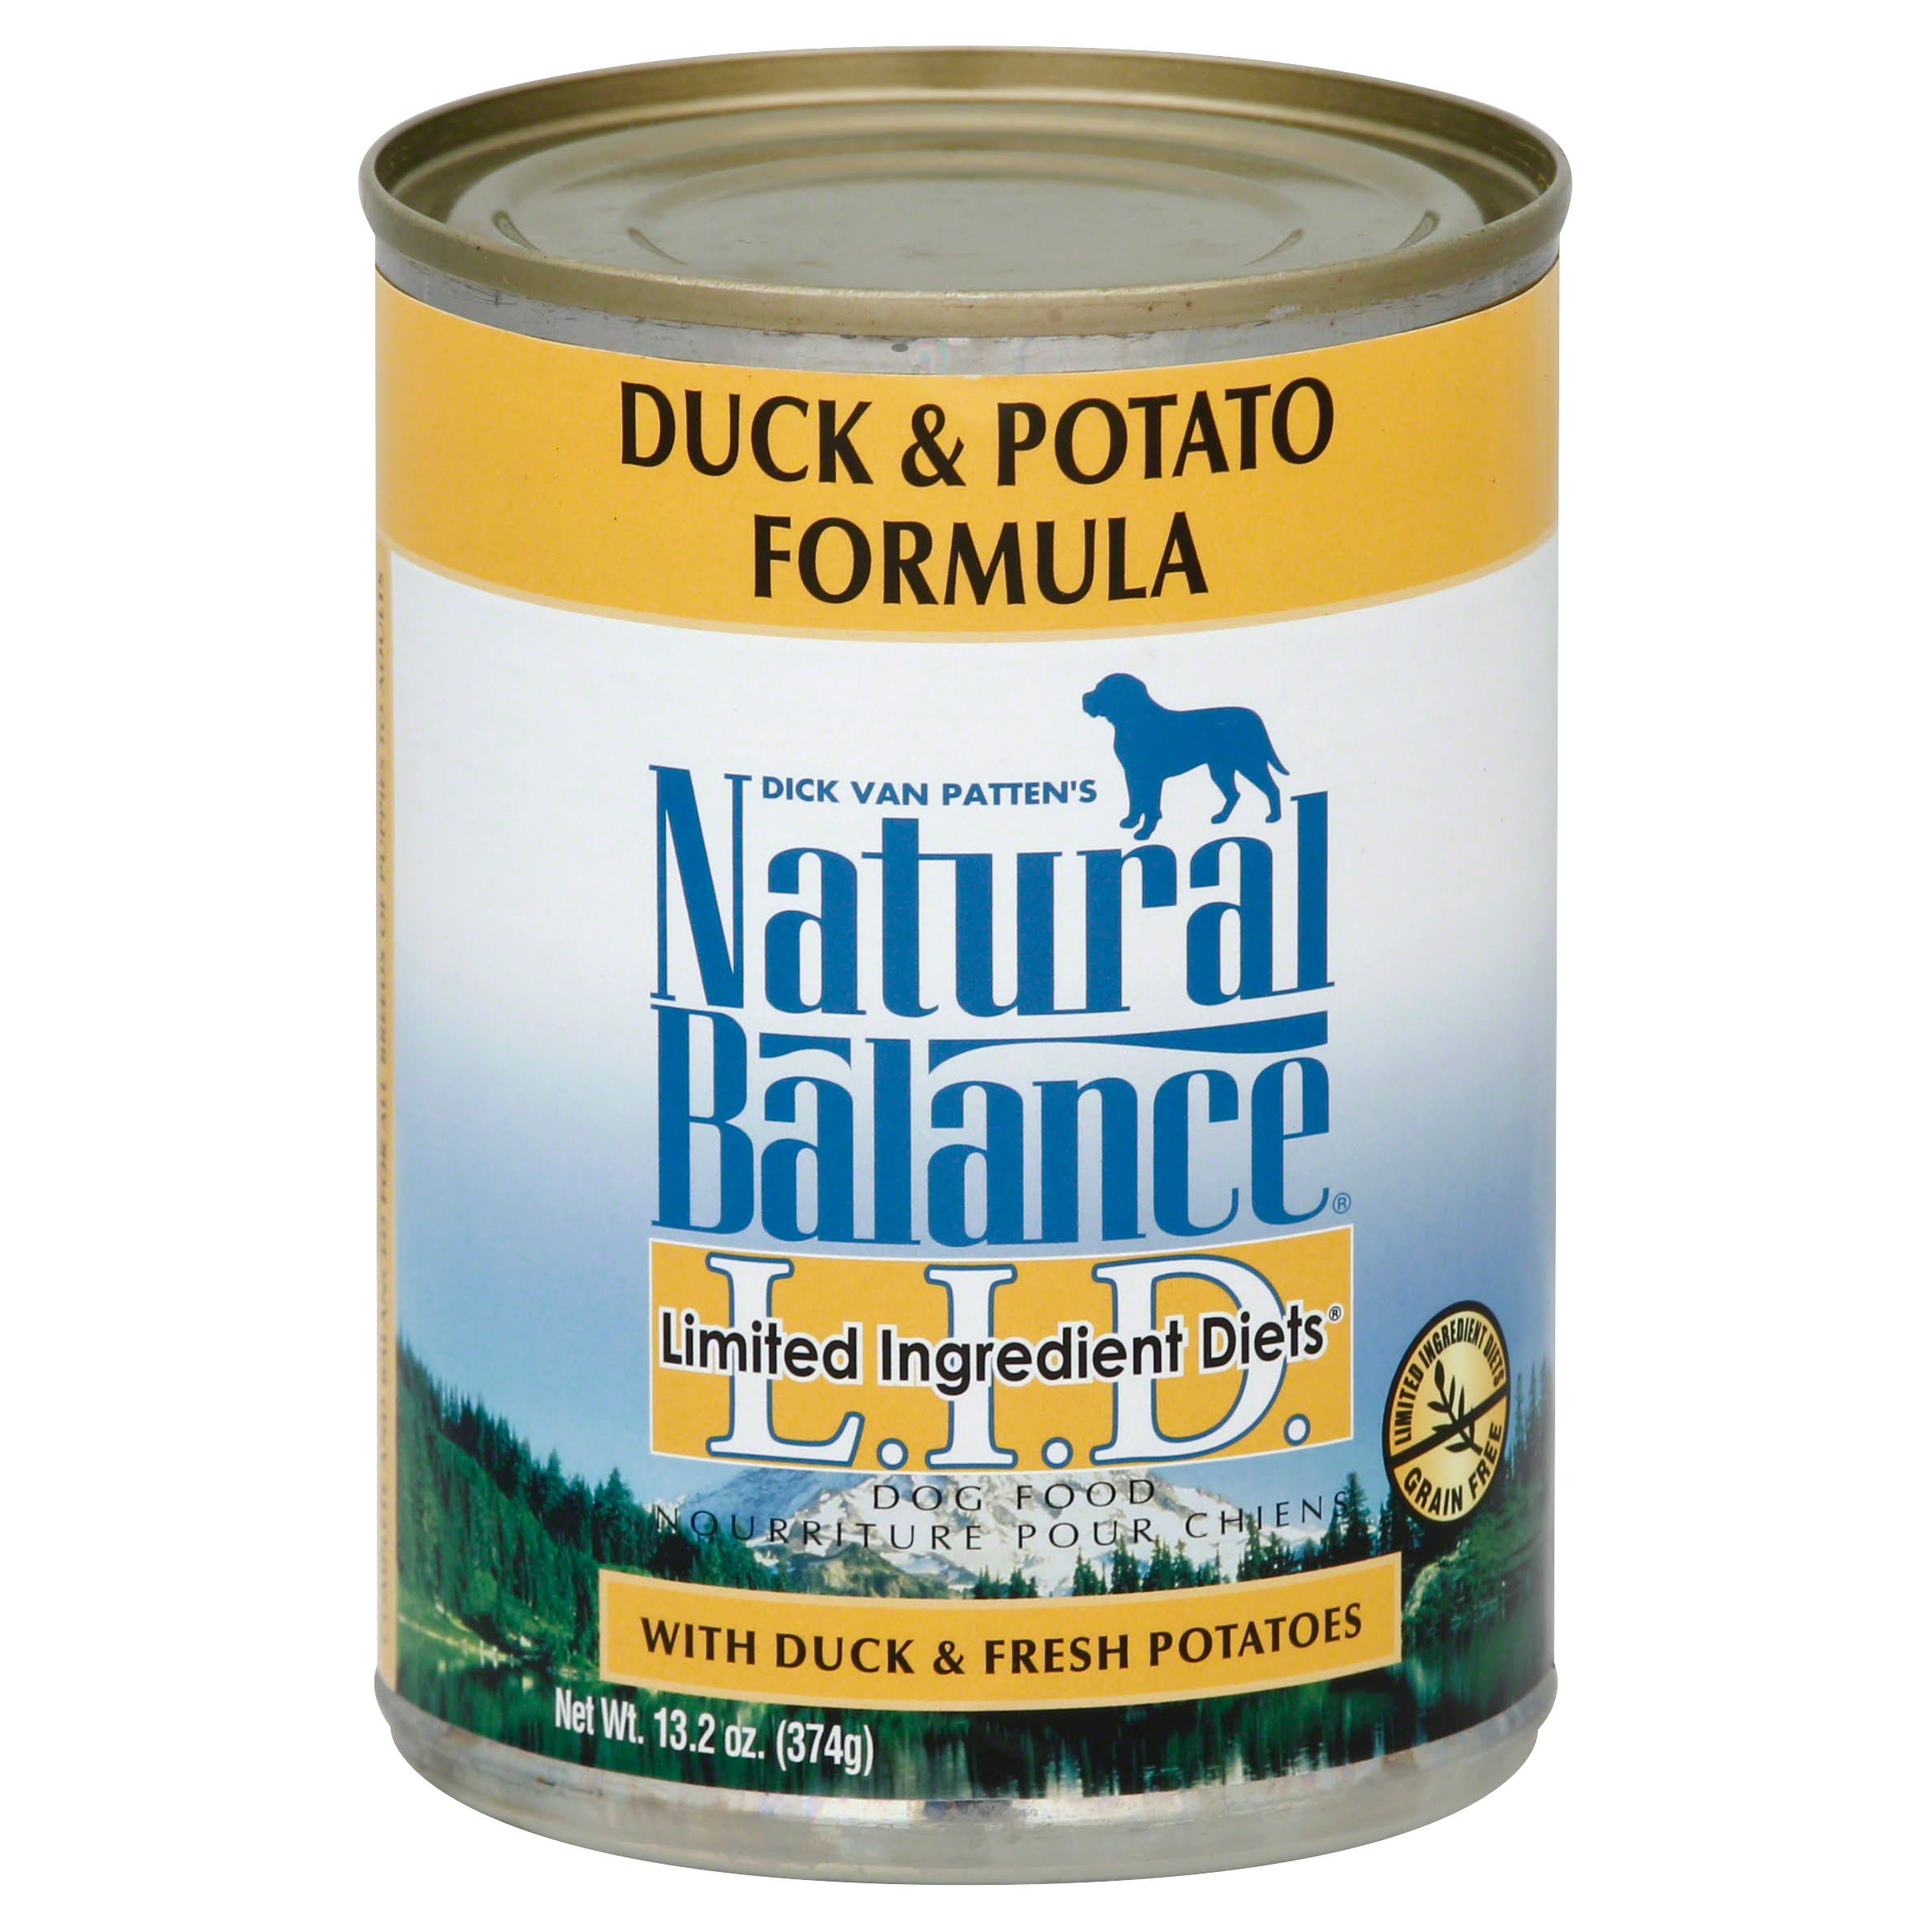 Naatural Balance Limited Ingredient Diets Dog Food - Duck And Potato Formula, 374g